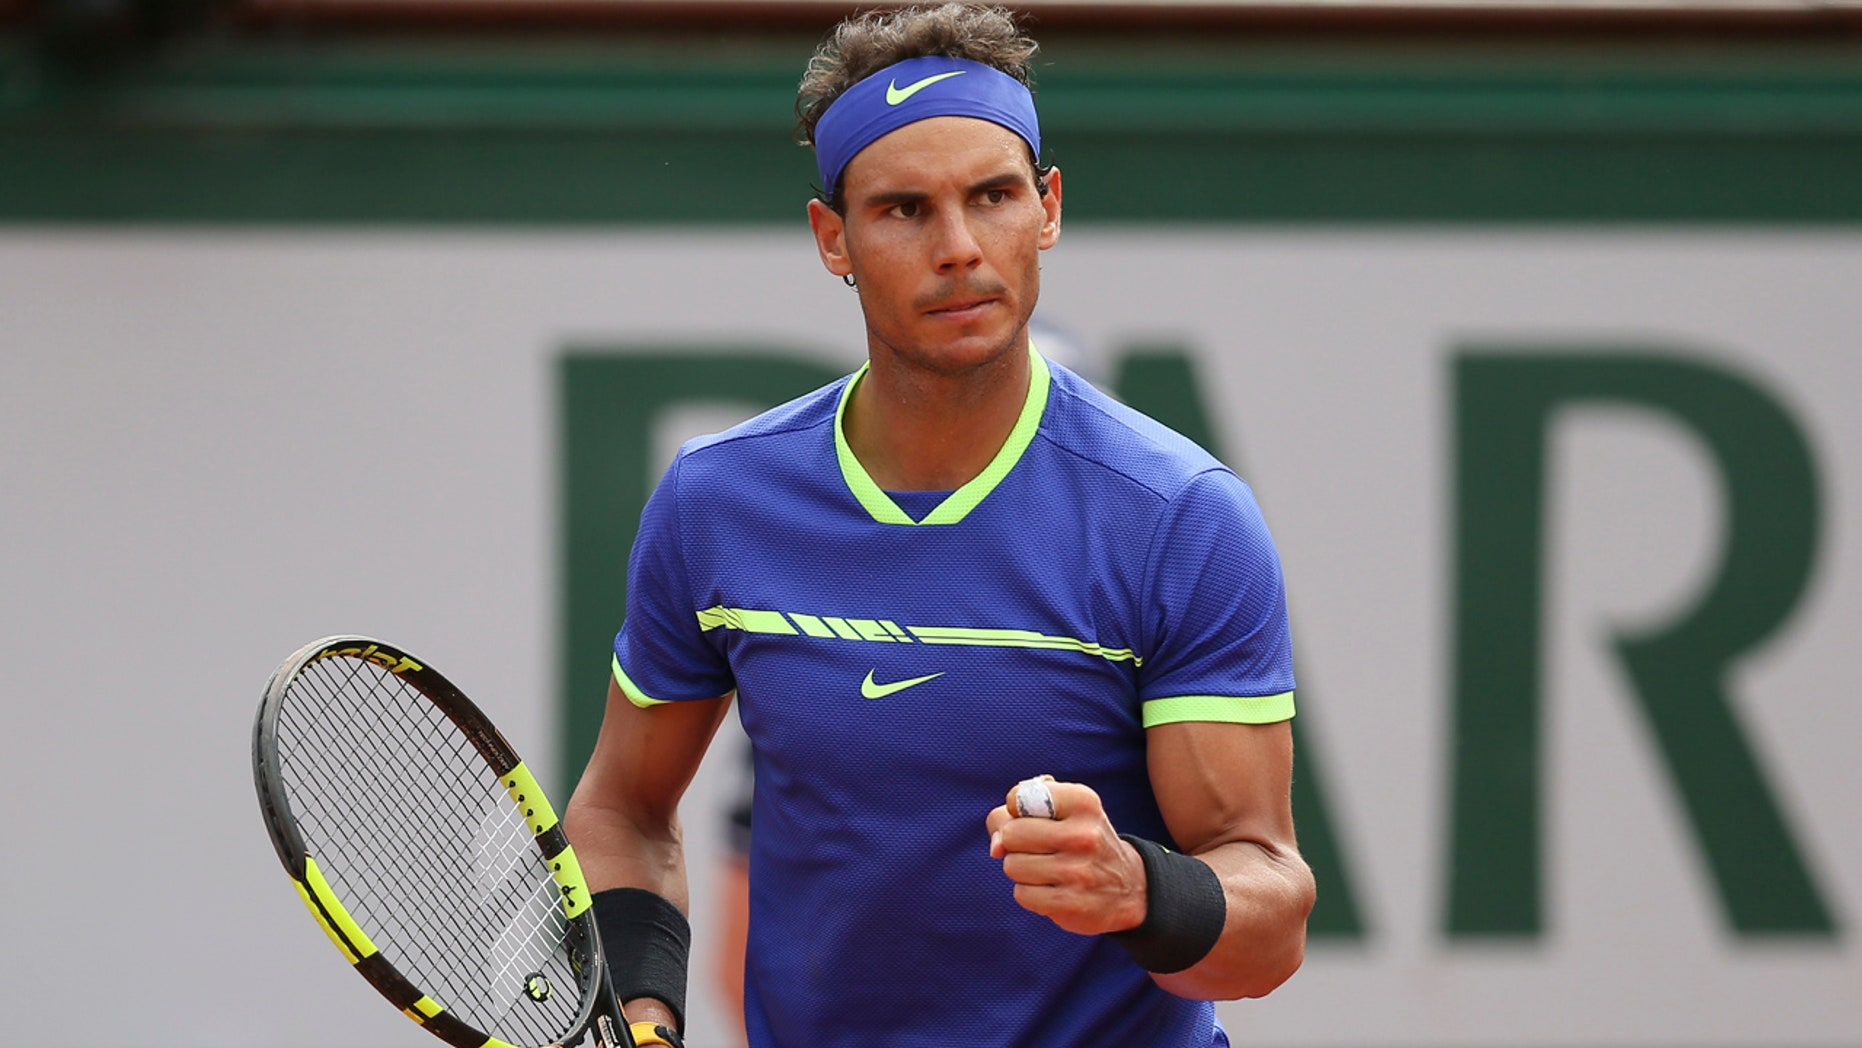 Spain's Rafael Nadal clenches his fist as he plays Switzerland's Stan Wawrinka during their final match of the French Open tennis tournament at the Roland Garros stadium, Sunday, June 11, 2017 in Paris.